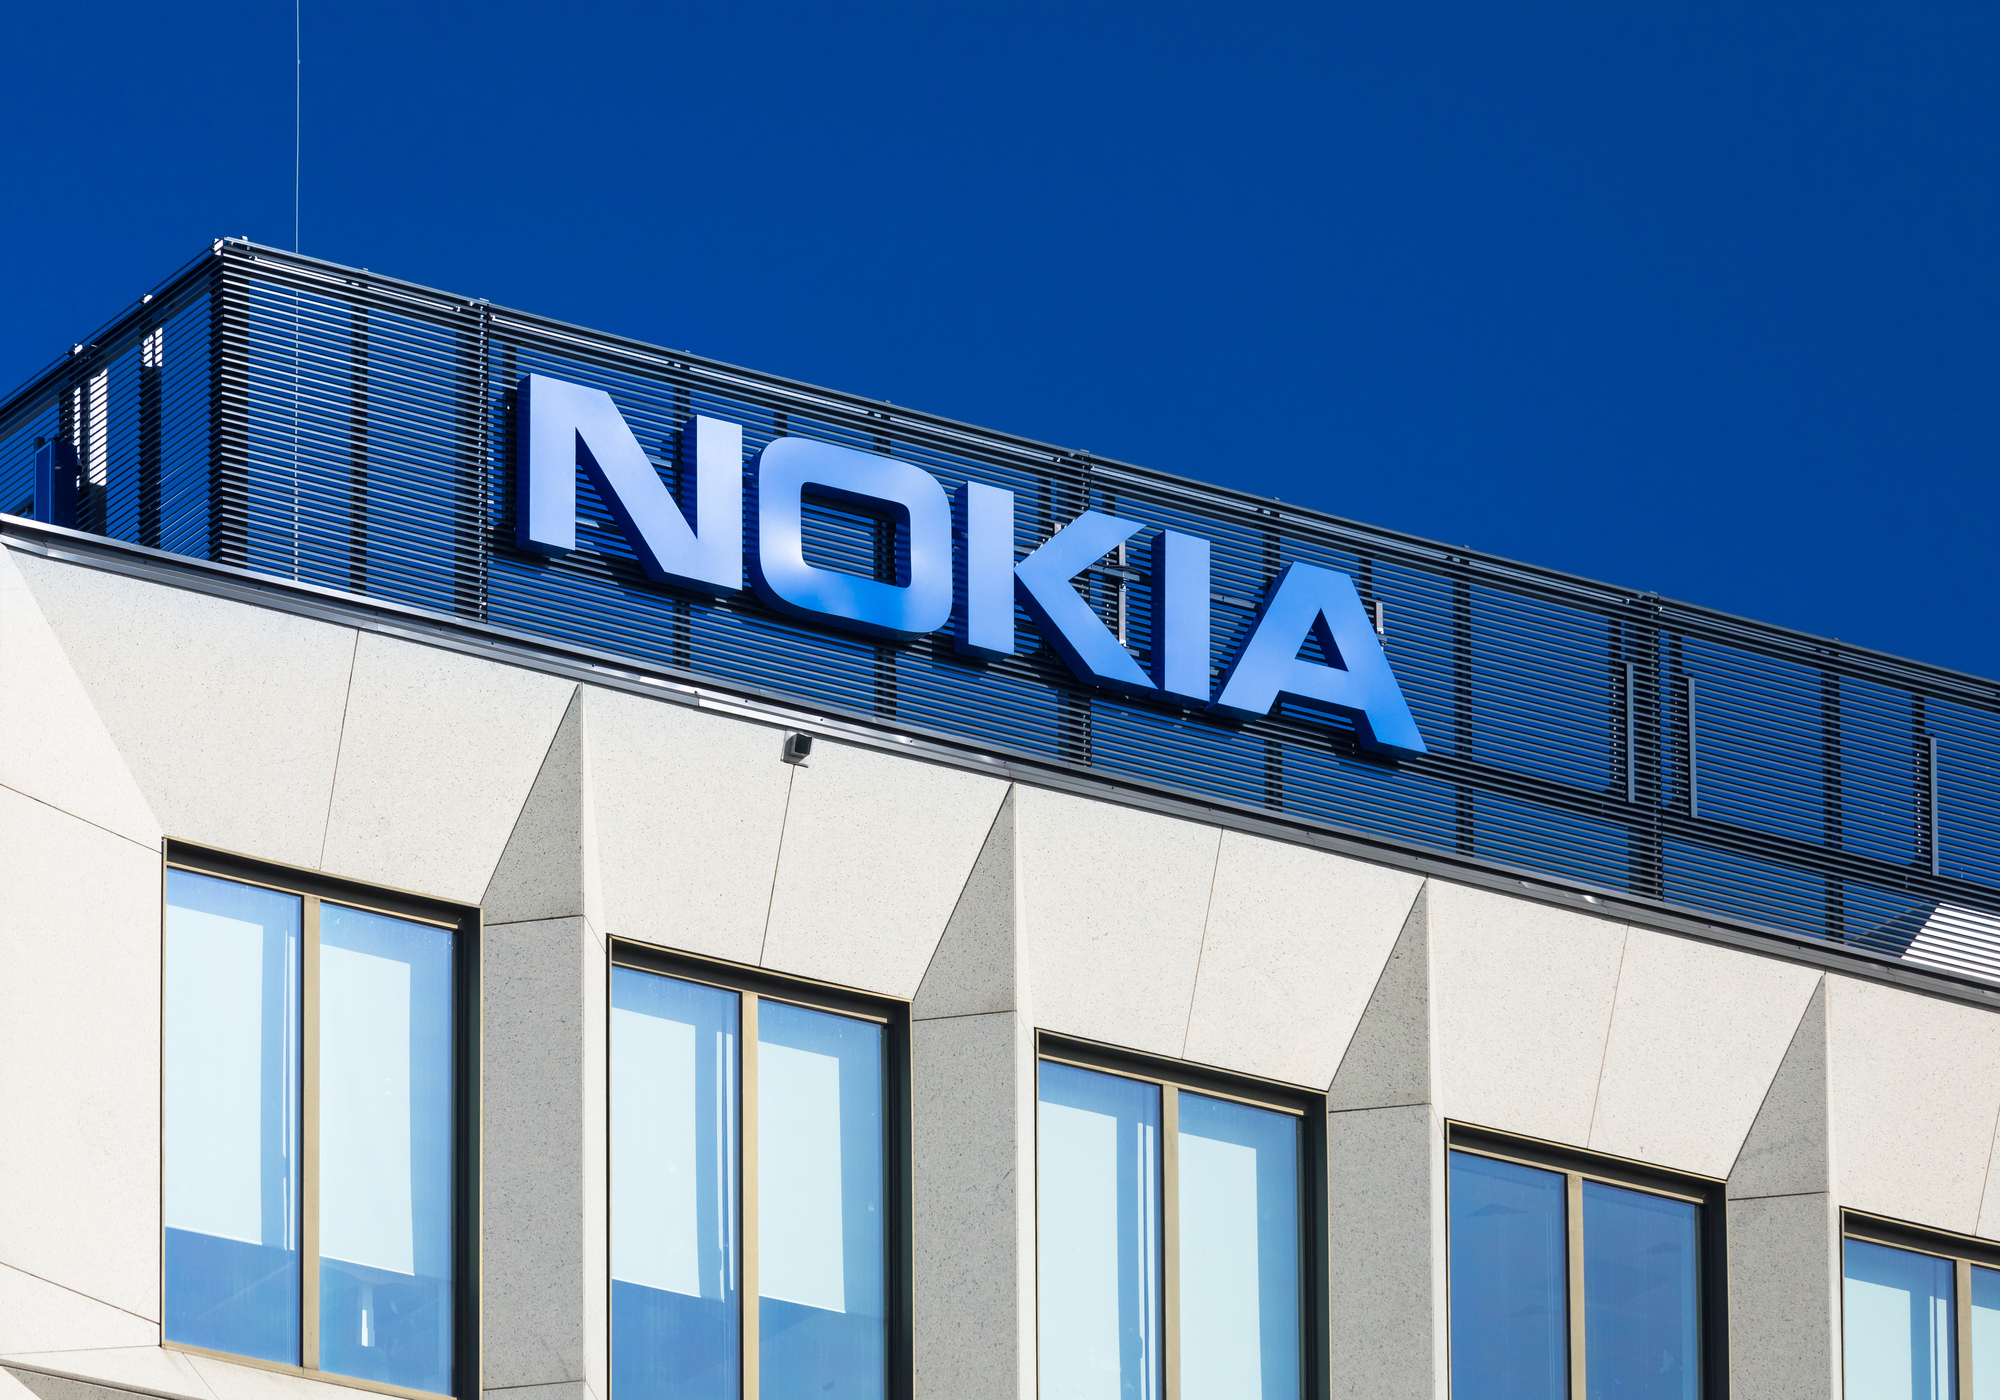 Nokia secures 5G deal with Finnish Shared Network